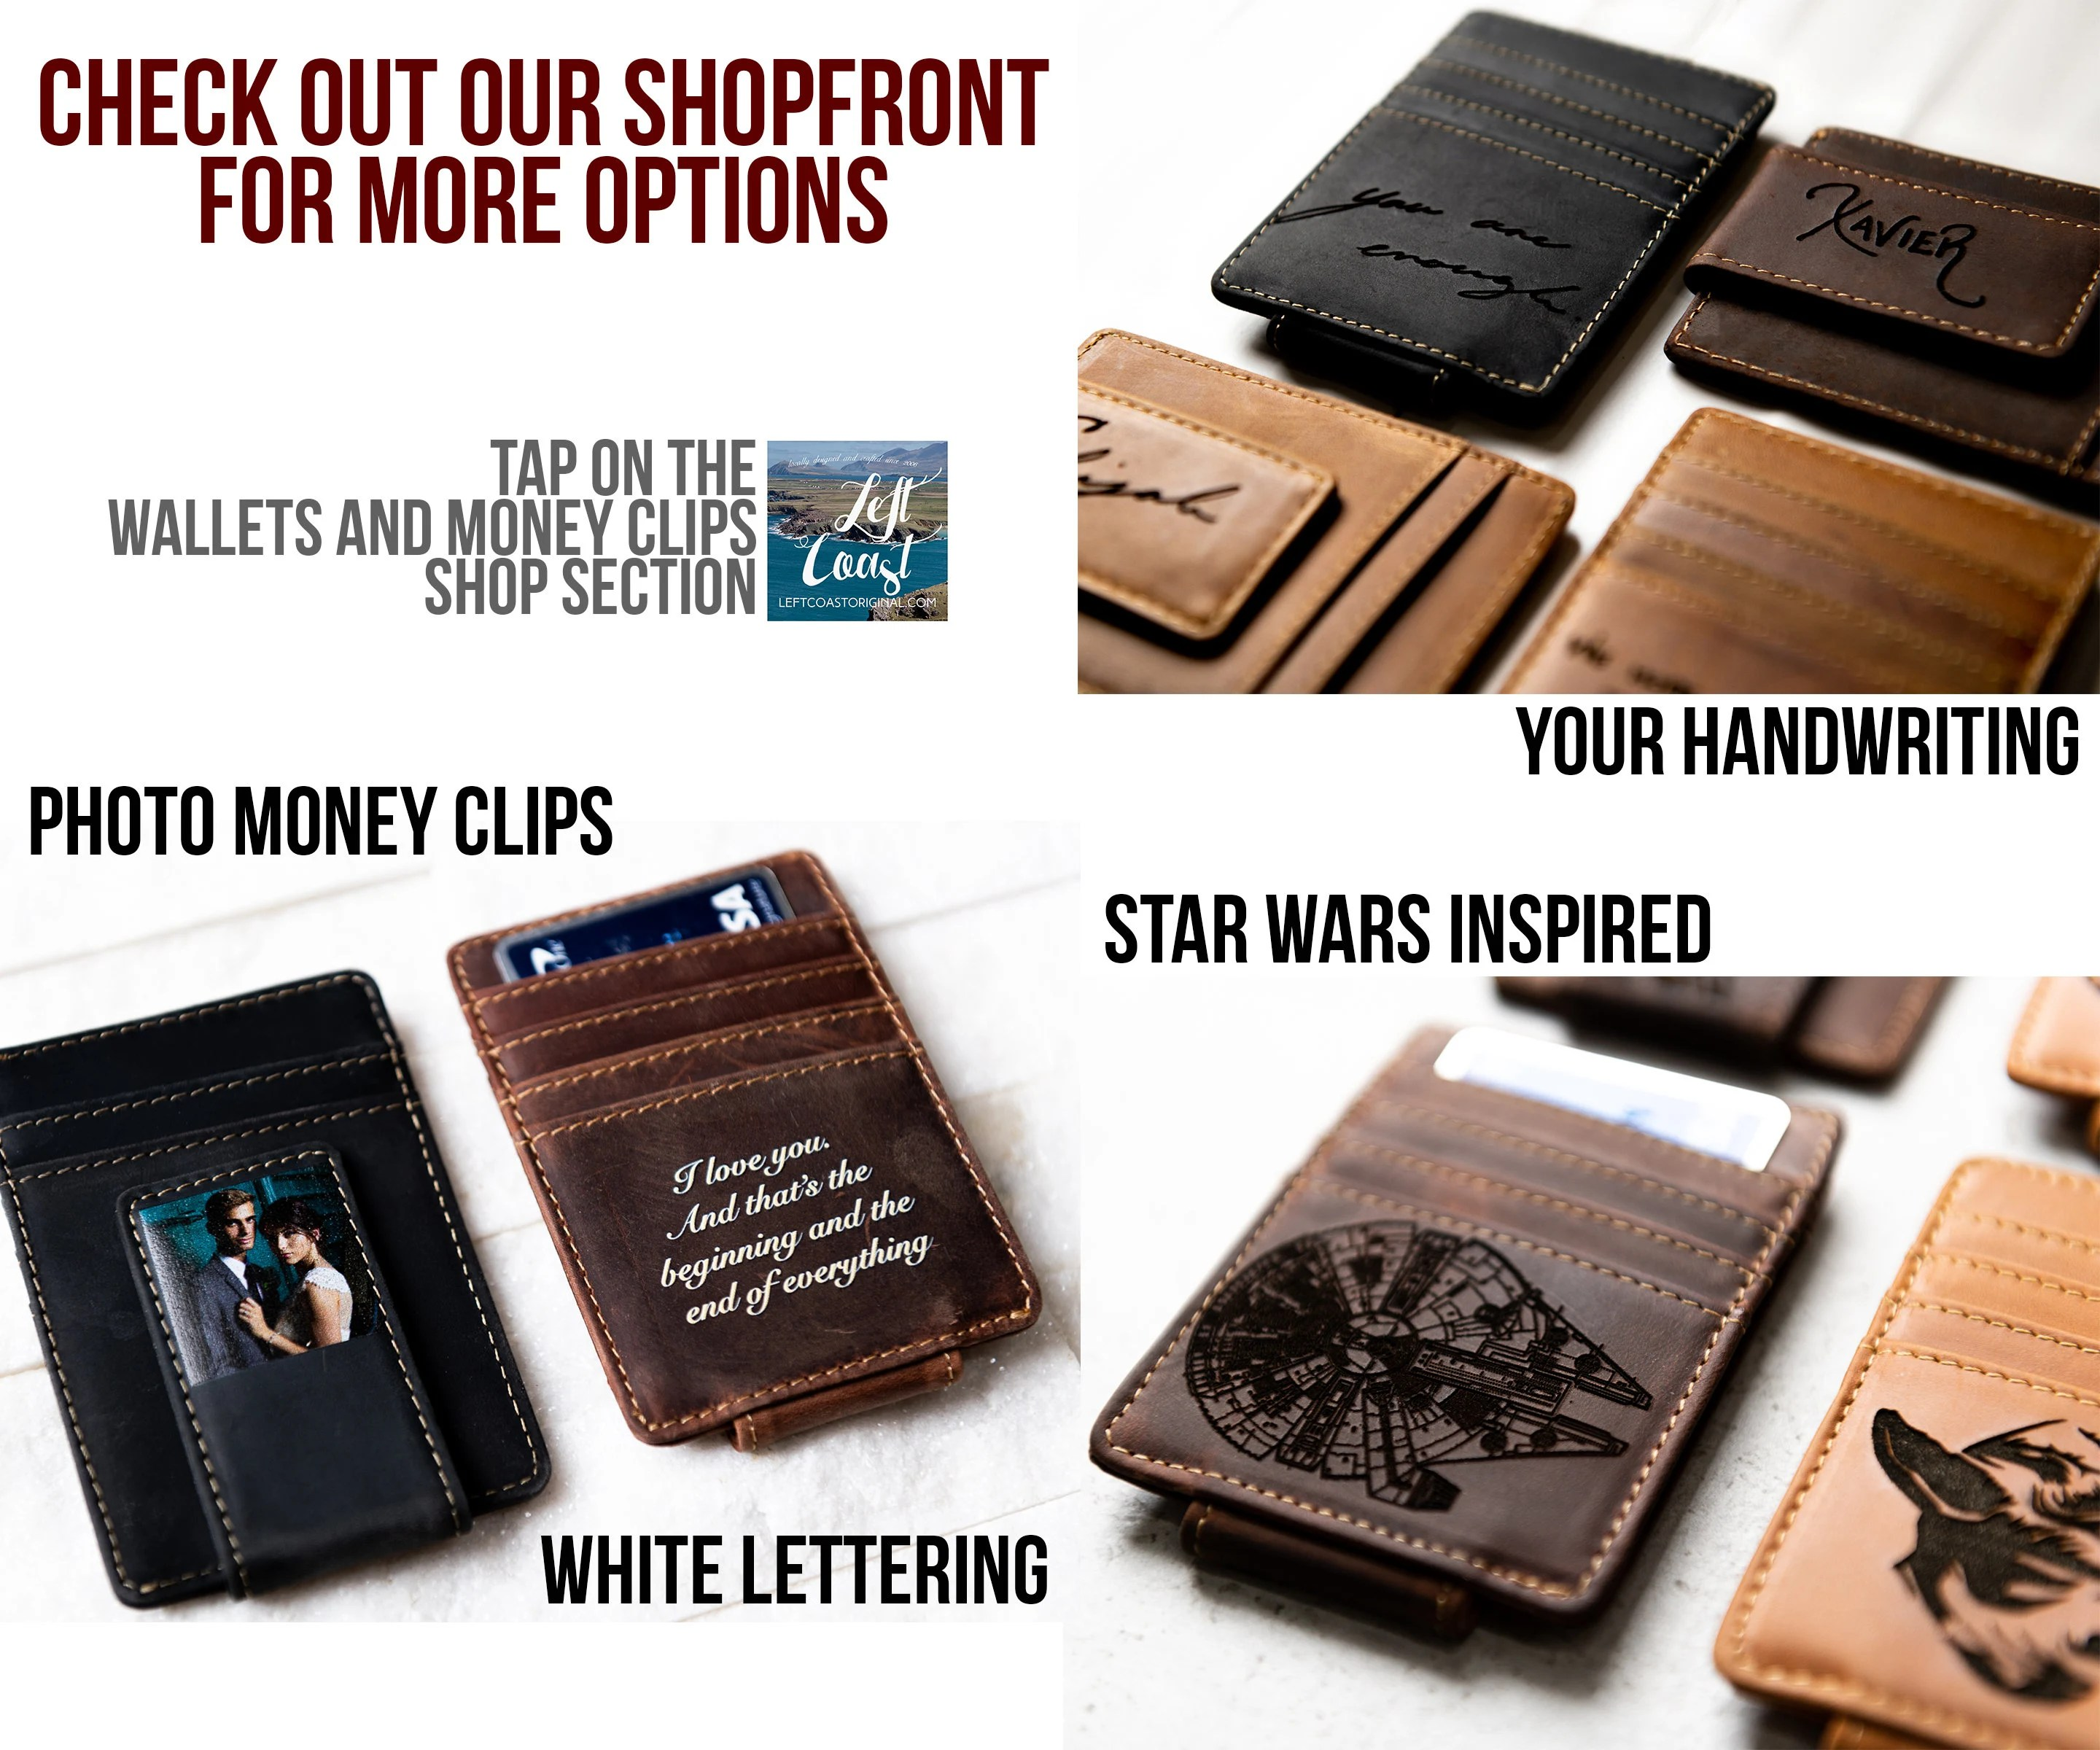 Personalized Leather Passport Cover Holder by Left Coast image 8